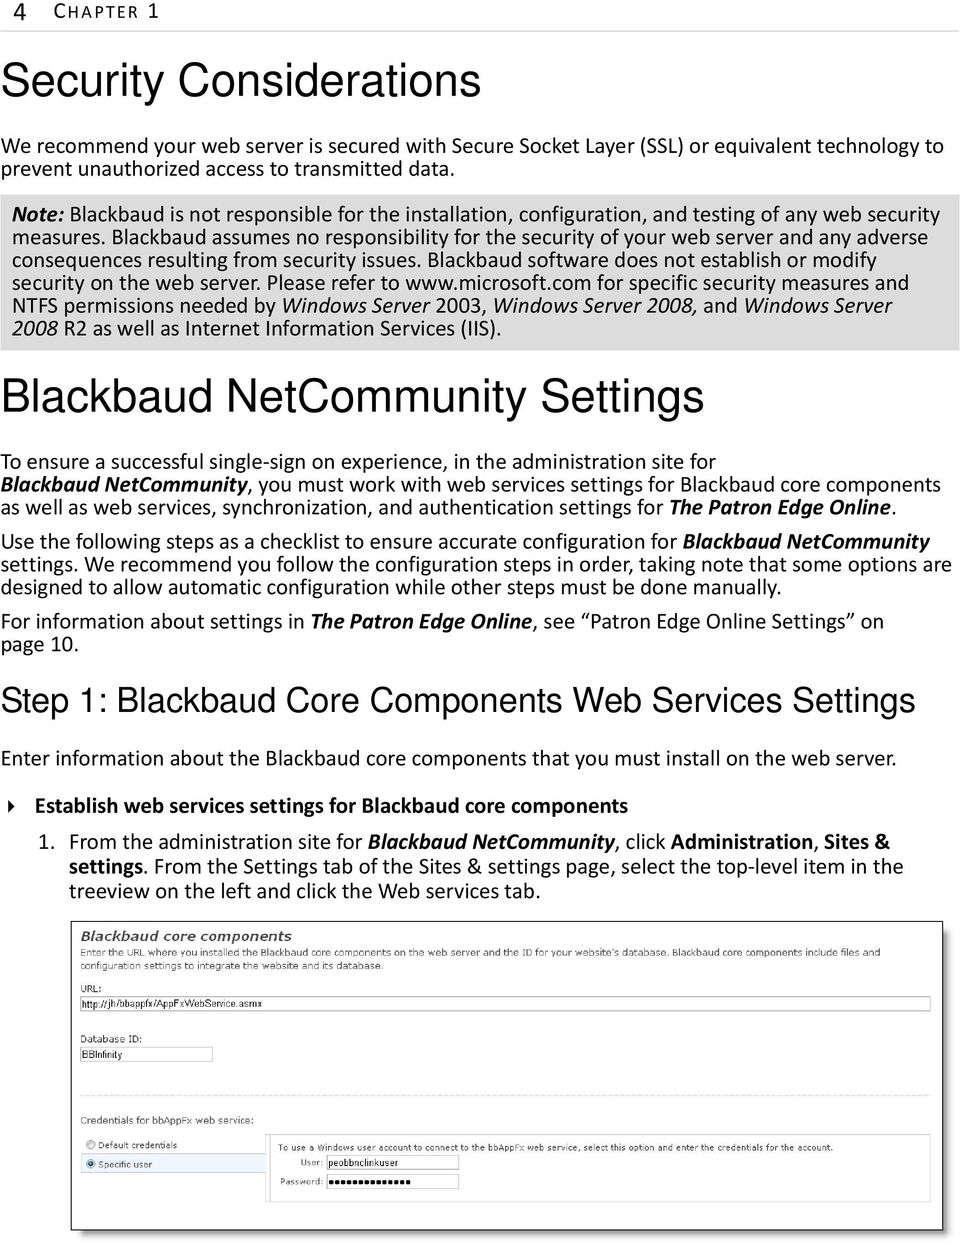 Blackbaud assumes no responsibility for the security of your web server and any adverse consequences resulting from security issues.